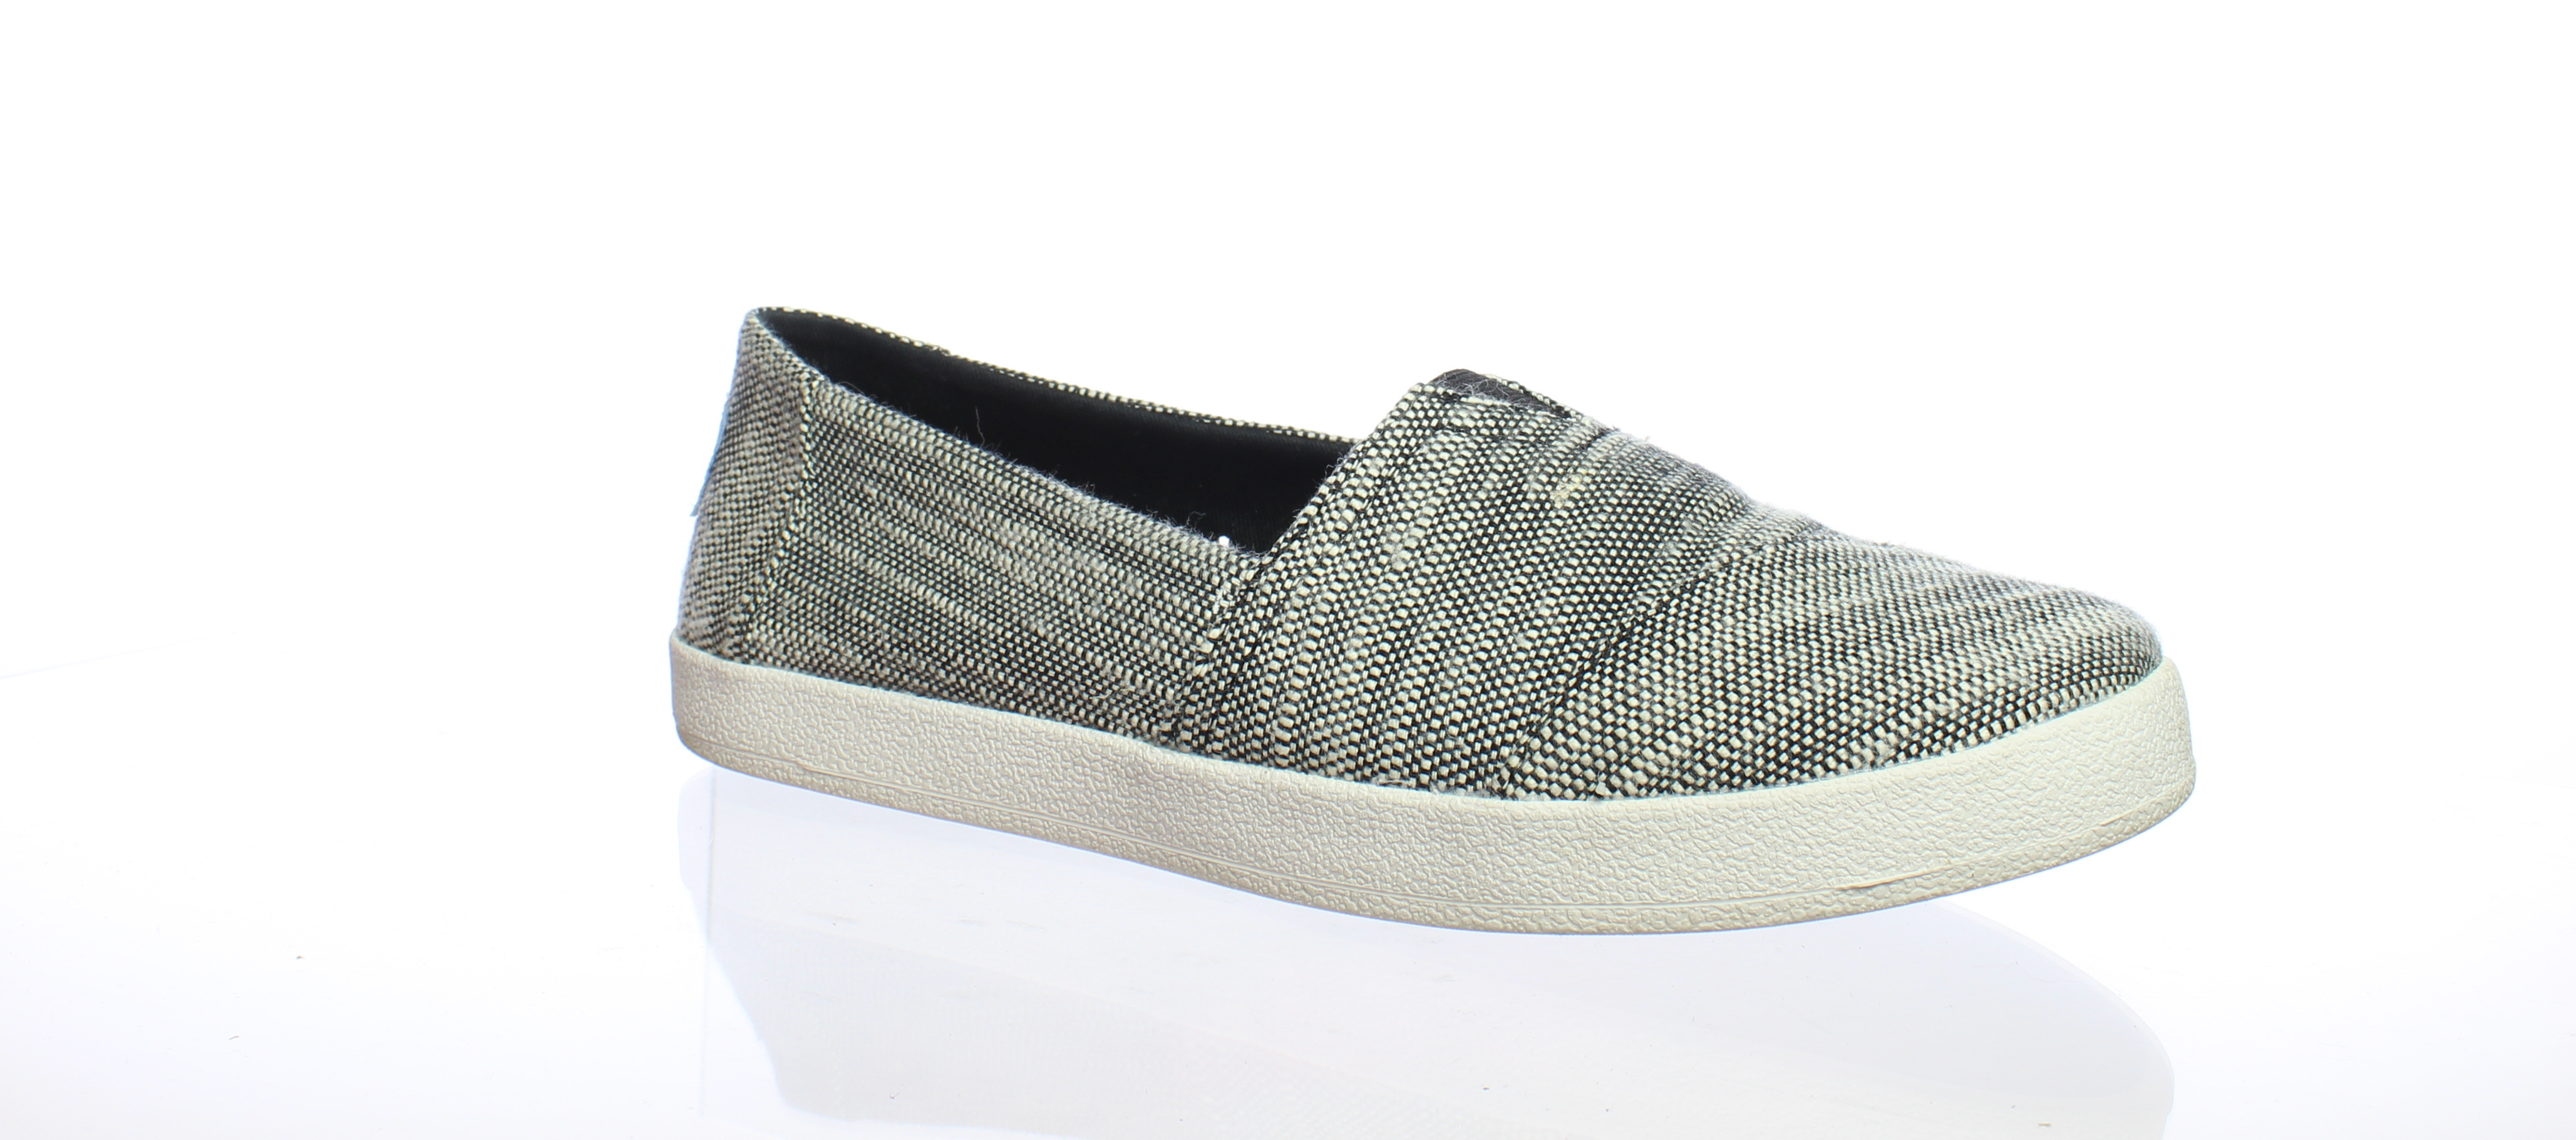 ac8c4b3e817d TOMS Womens Avalon Black Casual Flats Size 6.5